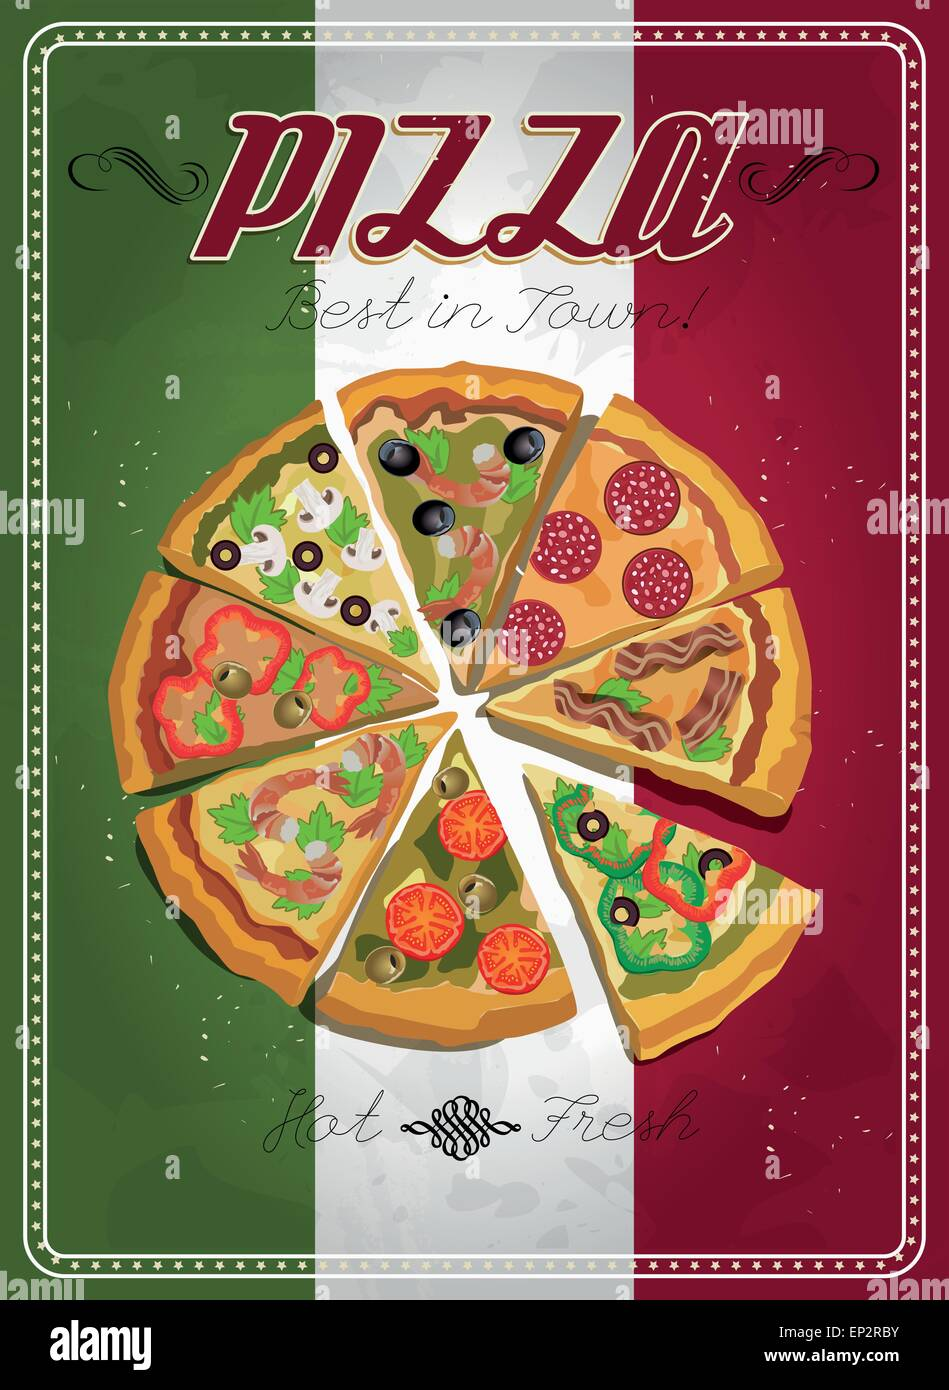 Poster design template - Stock Vector Vector Pizza Label Or Poster Design Template Pizza Design Menu Poster With Pizza And A Slice Of Pizza